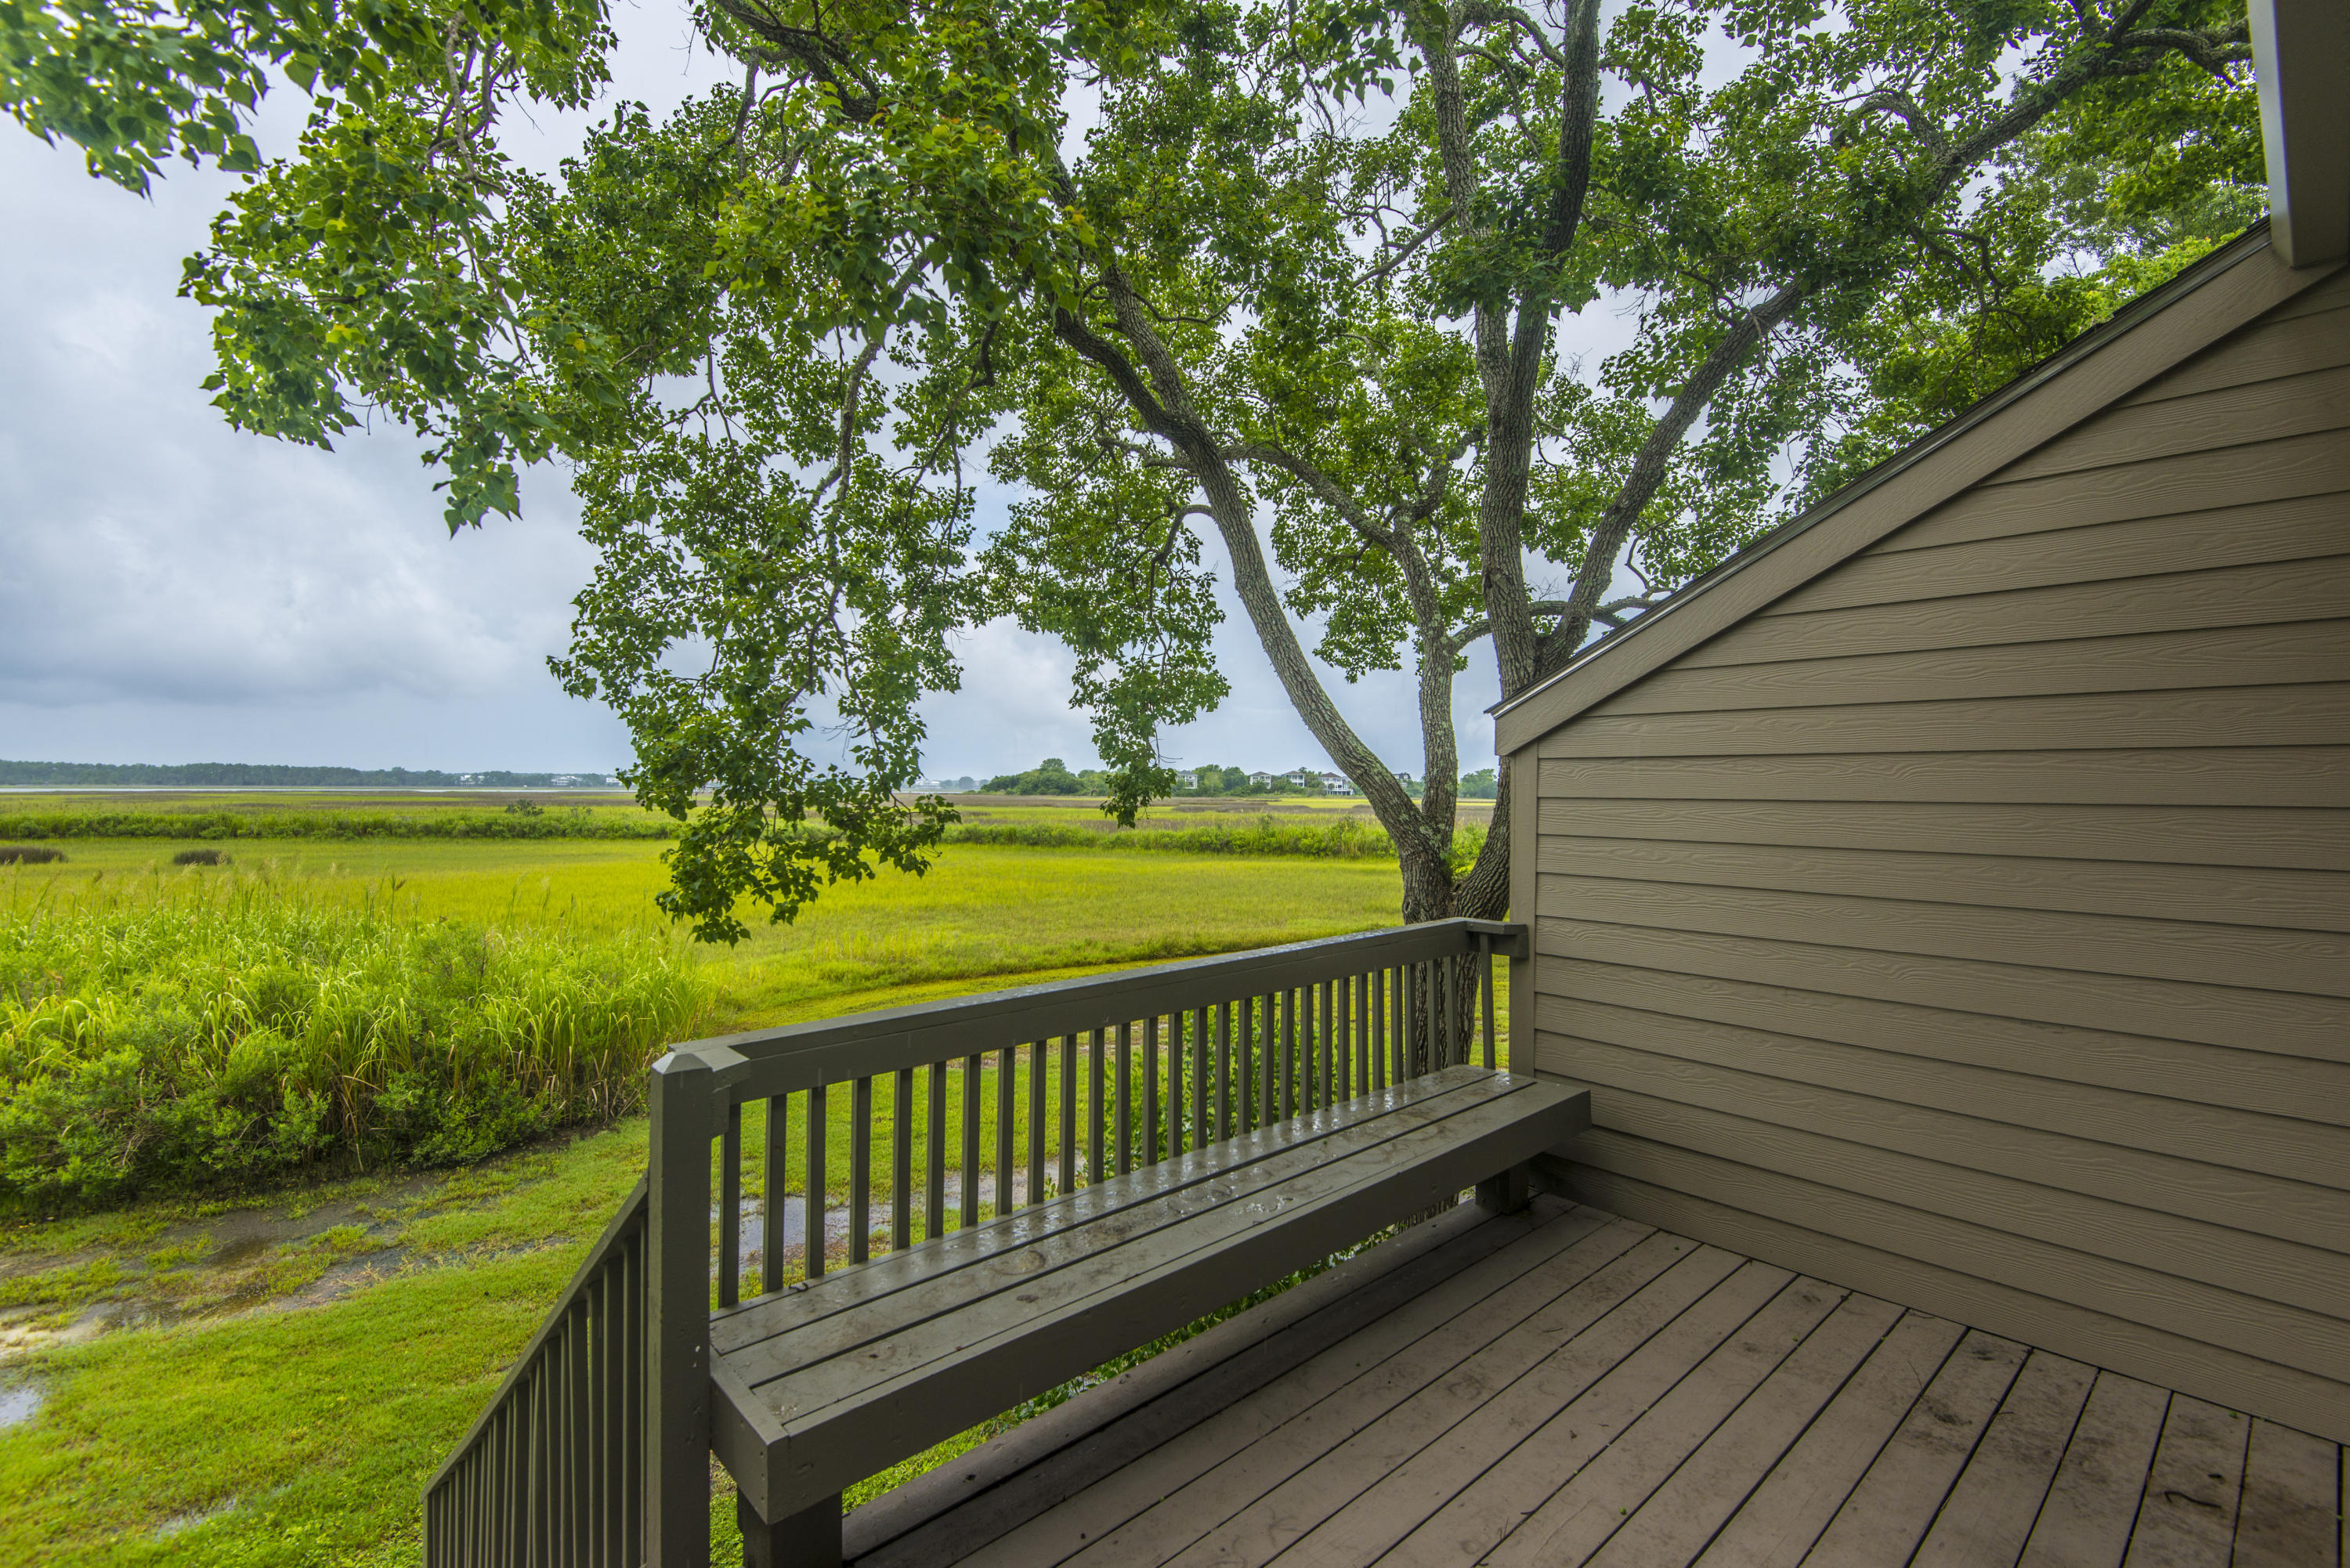 Waterway South Homes For Sale - 153 River Breeze, Charleston, SC - 22